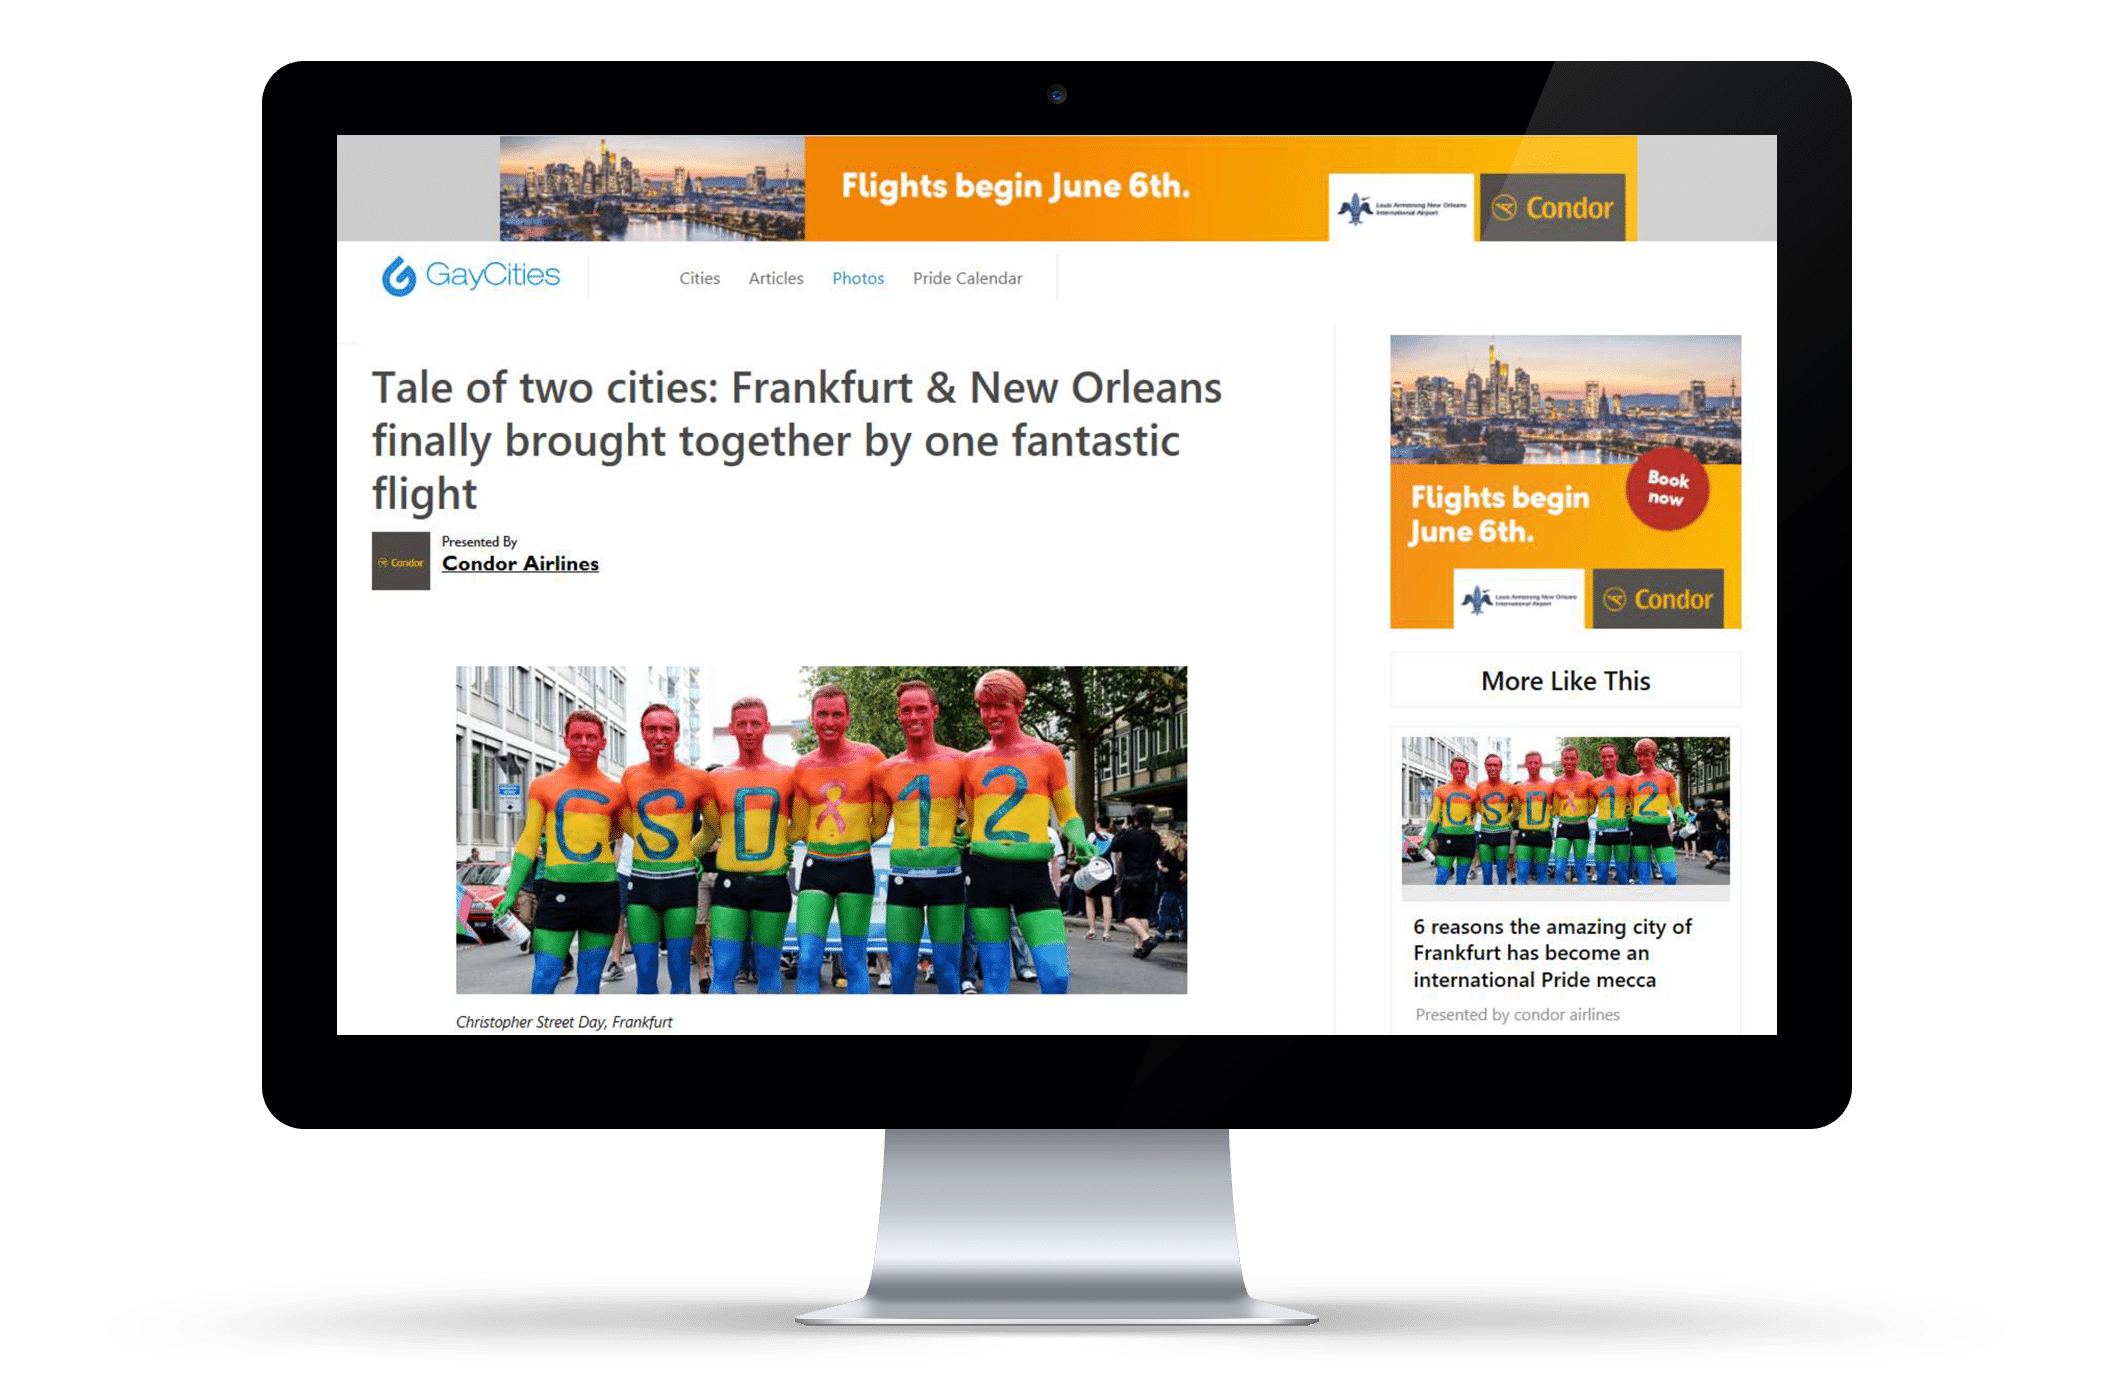 Computer monitor with a web browser open to Gay Cities' article about Condor's sponsored pride parade float